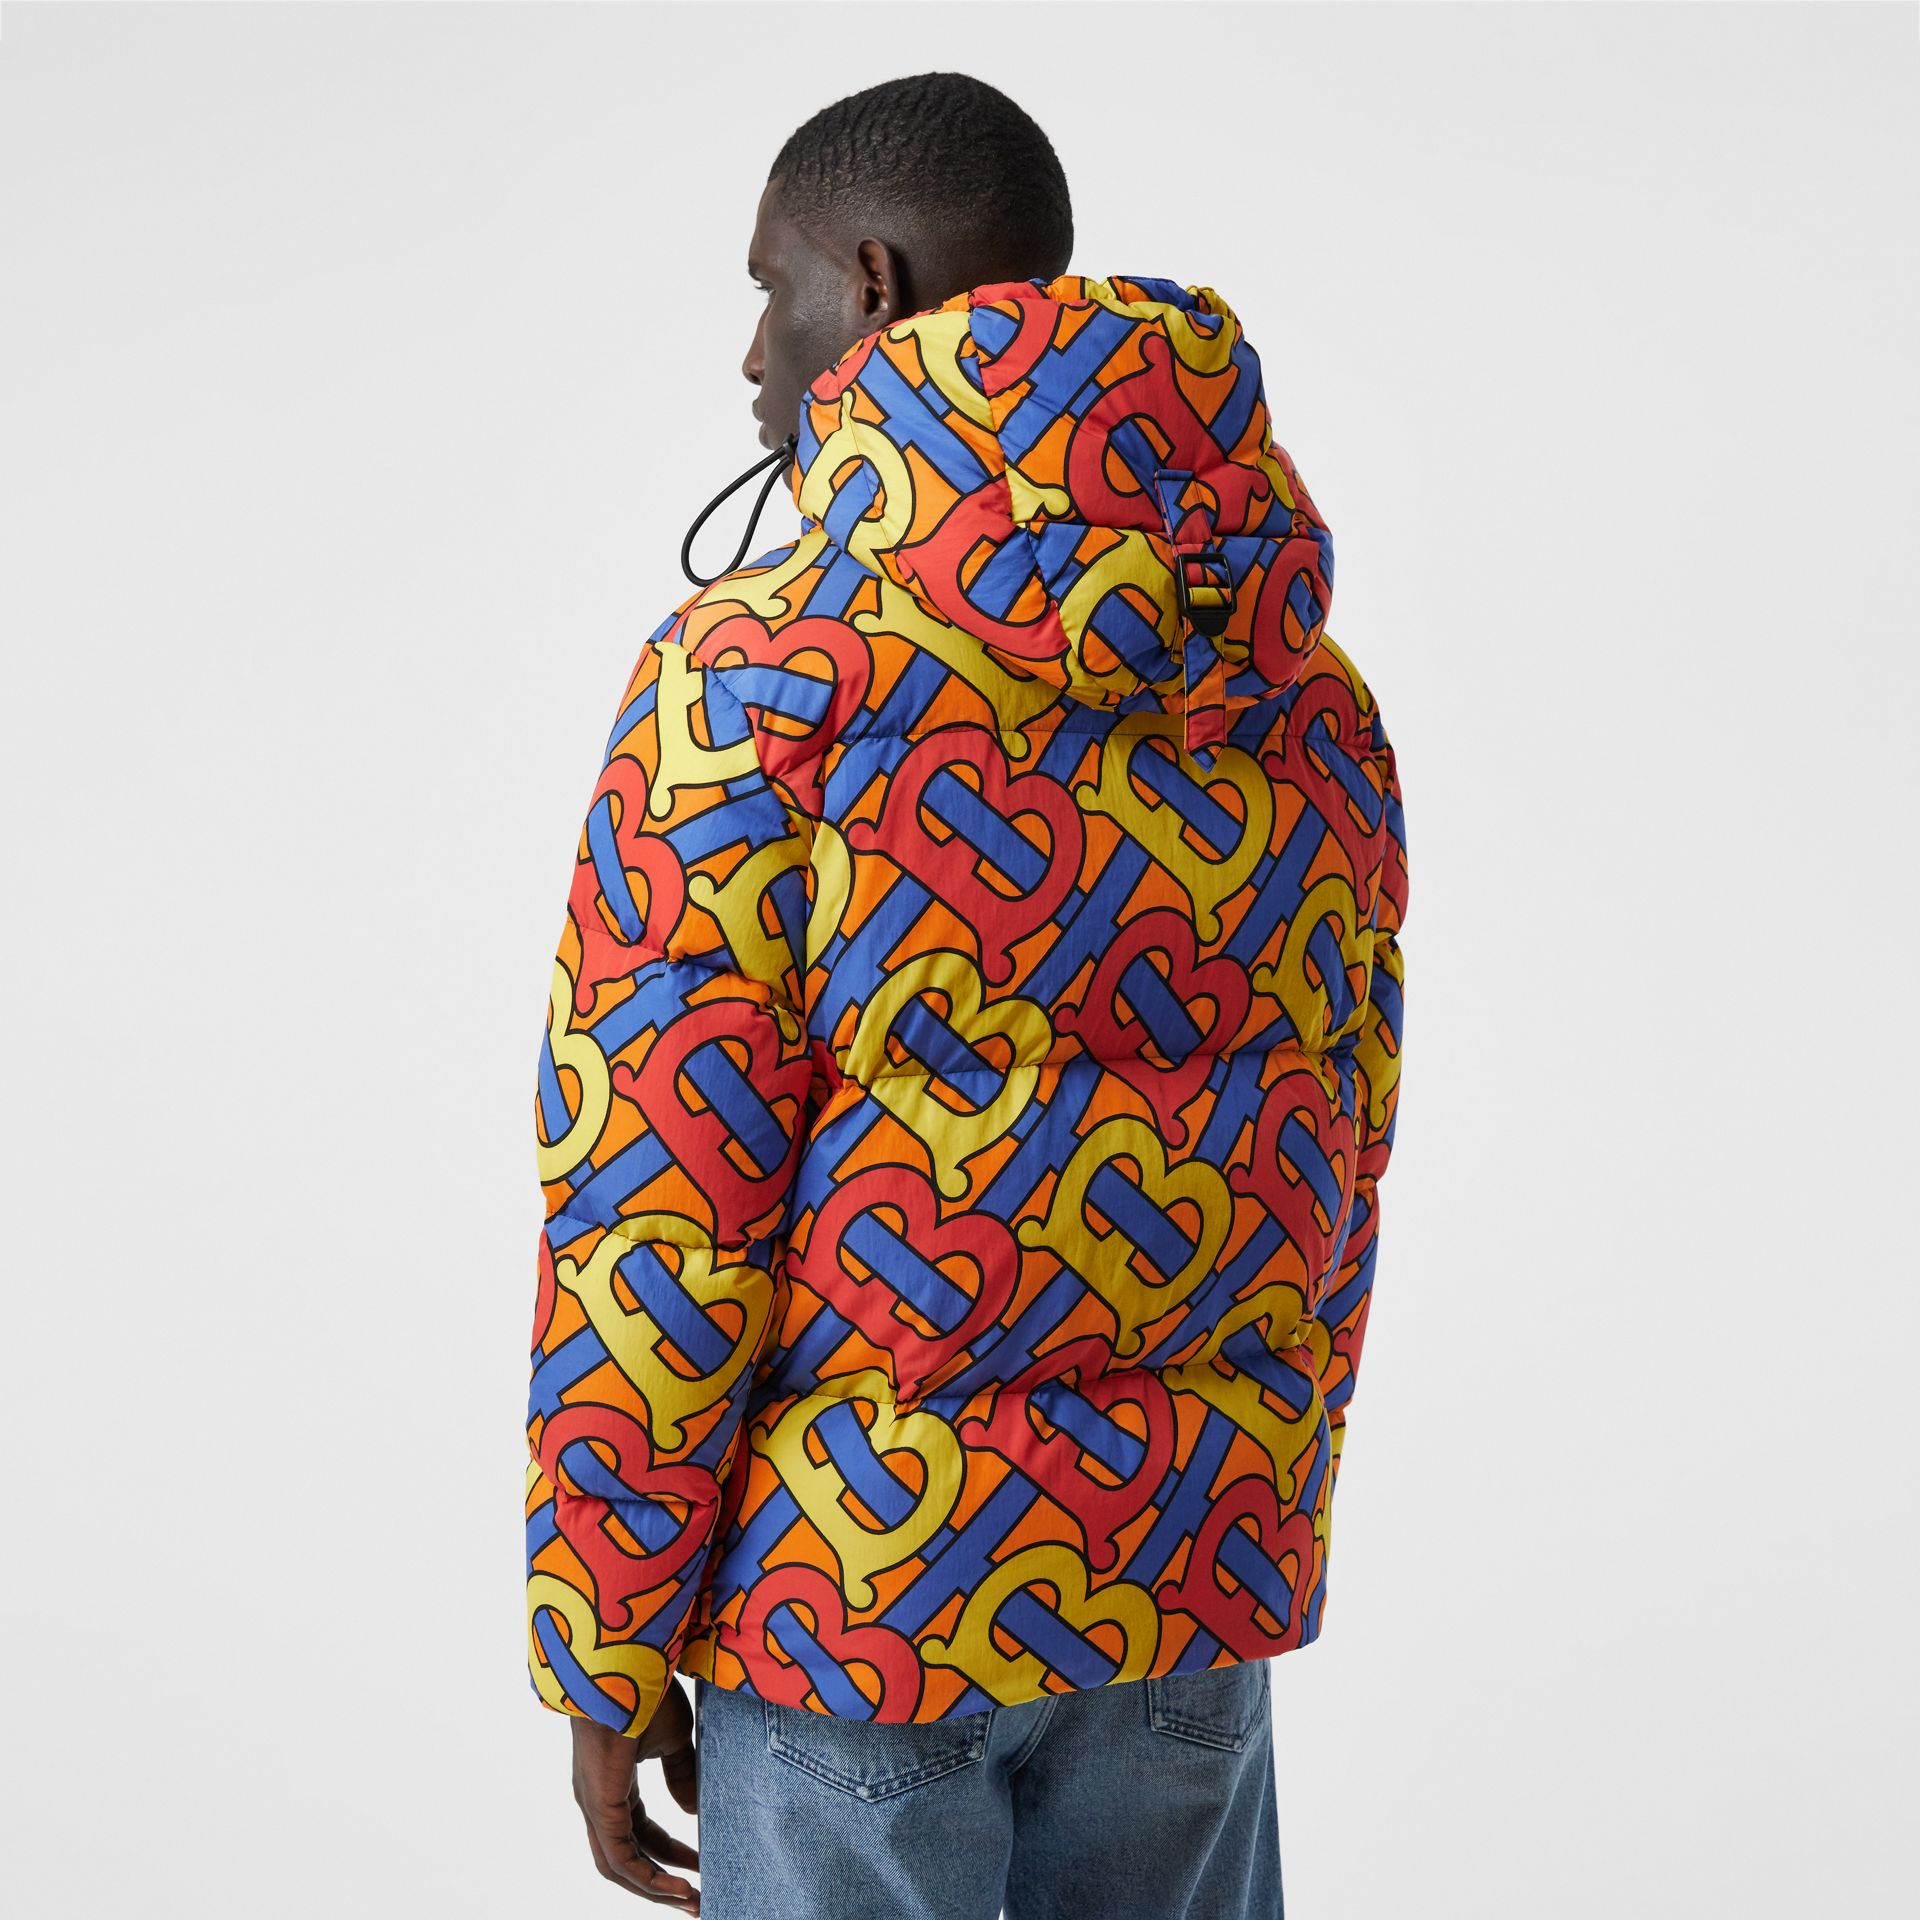 Monogram Print Puffer Jacket in Multicolour | Burberry - gallery image 6